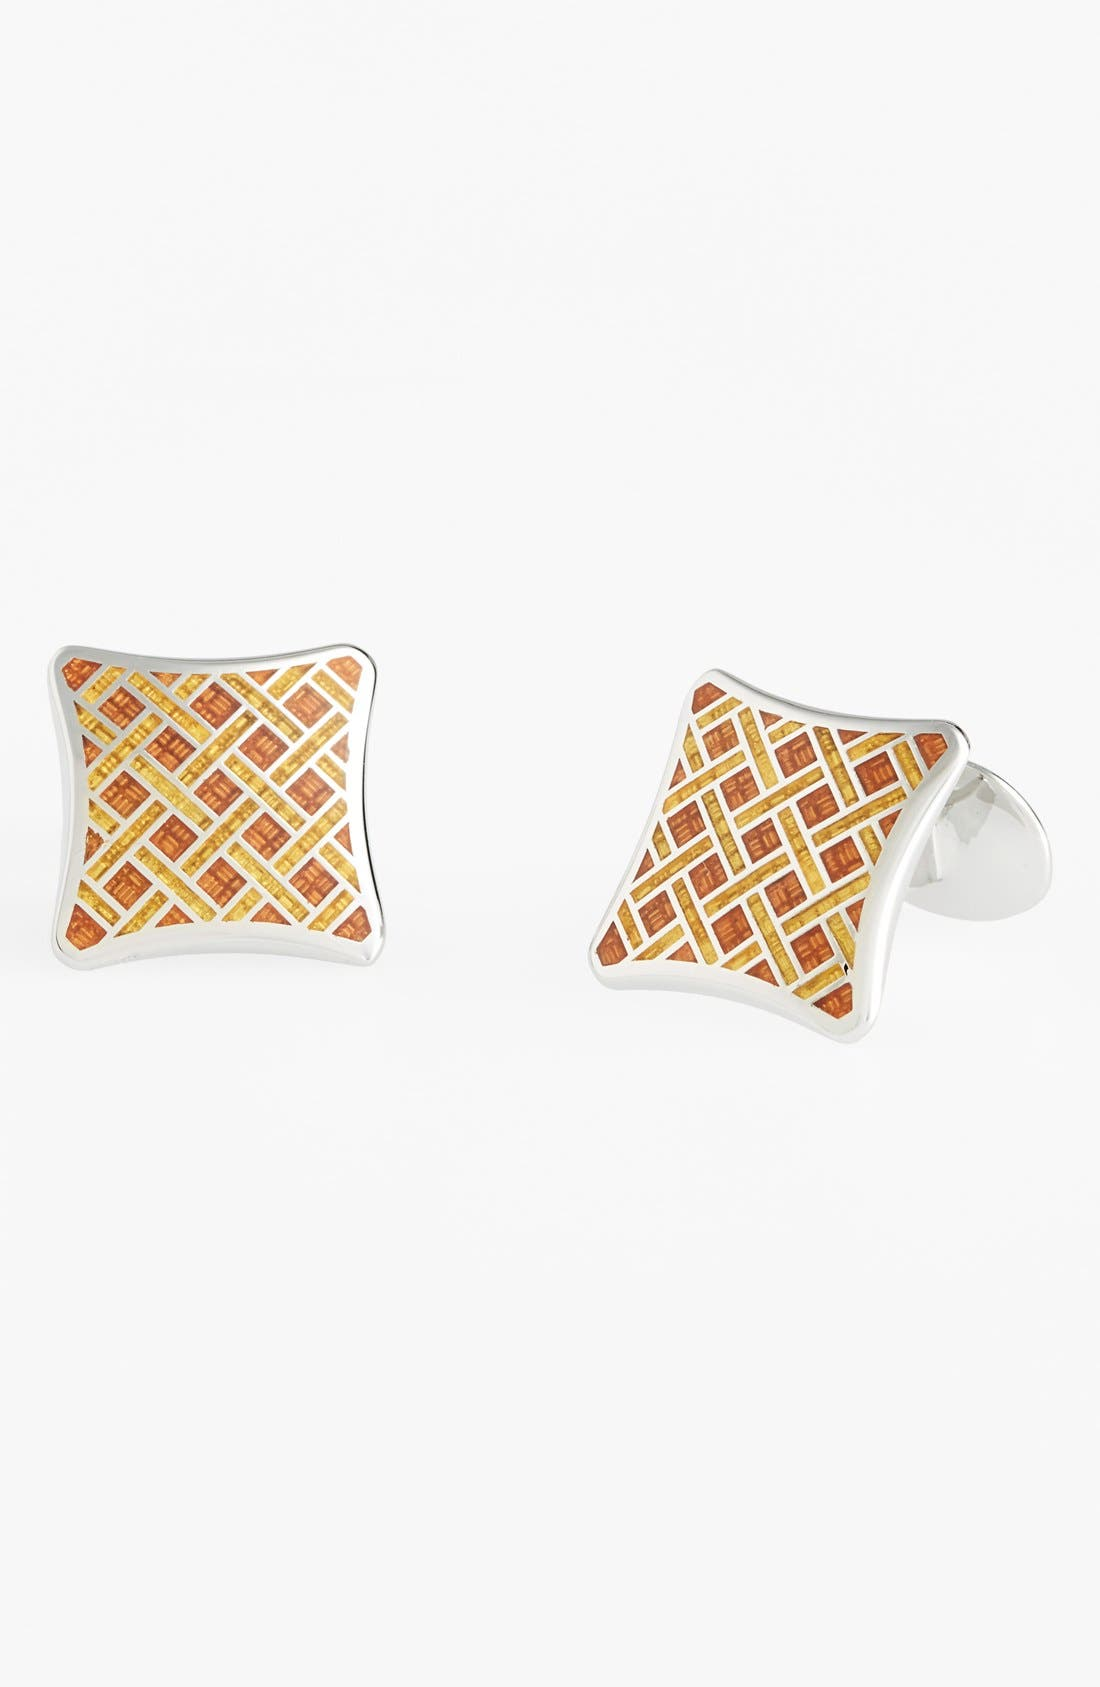 Alternate Image 1 Selected - David Donahue Enamel & Sterling Silver Cuff Links